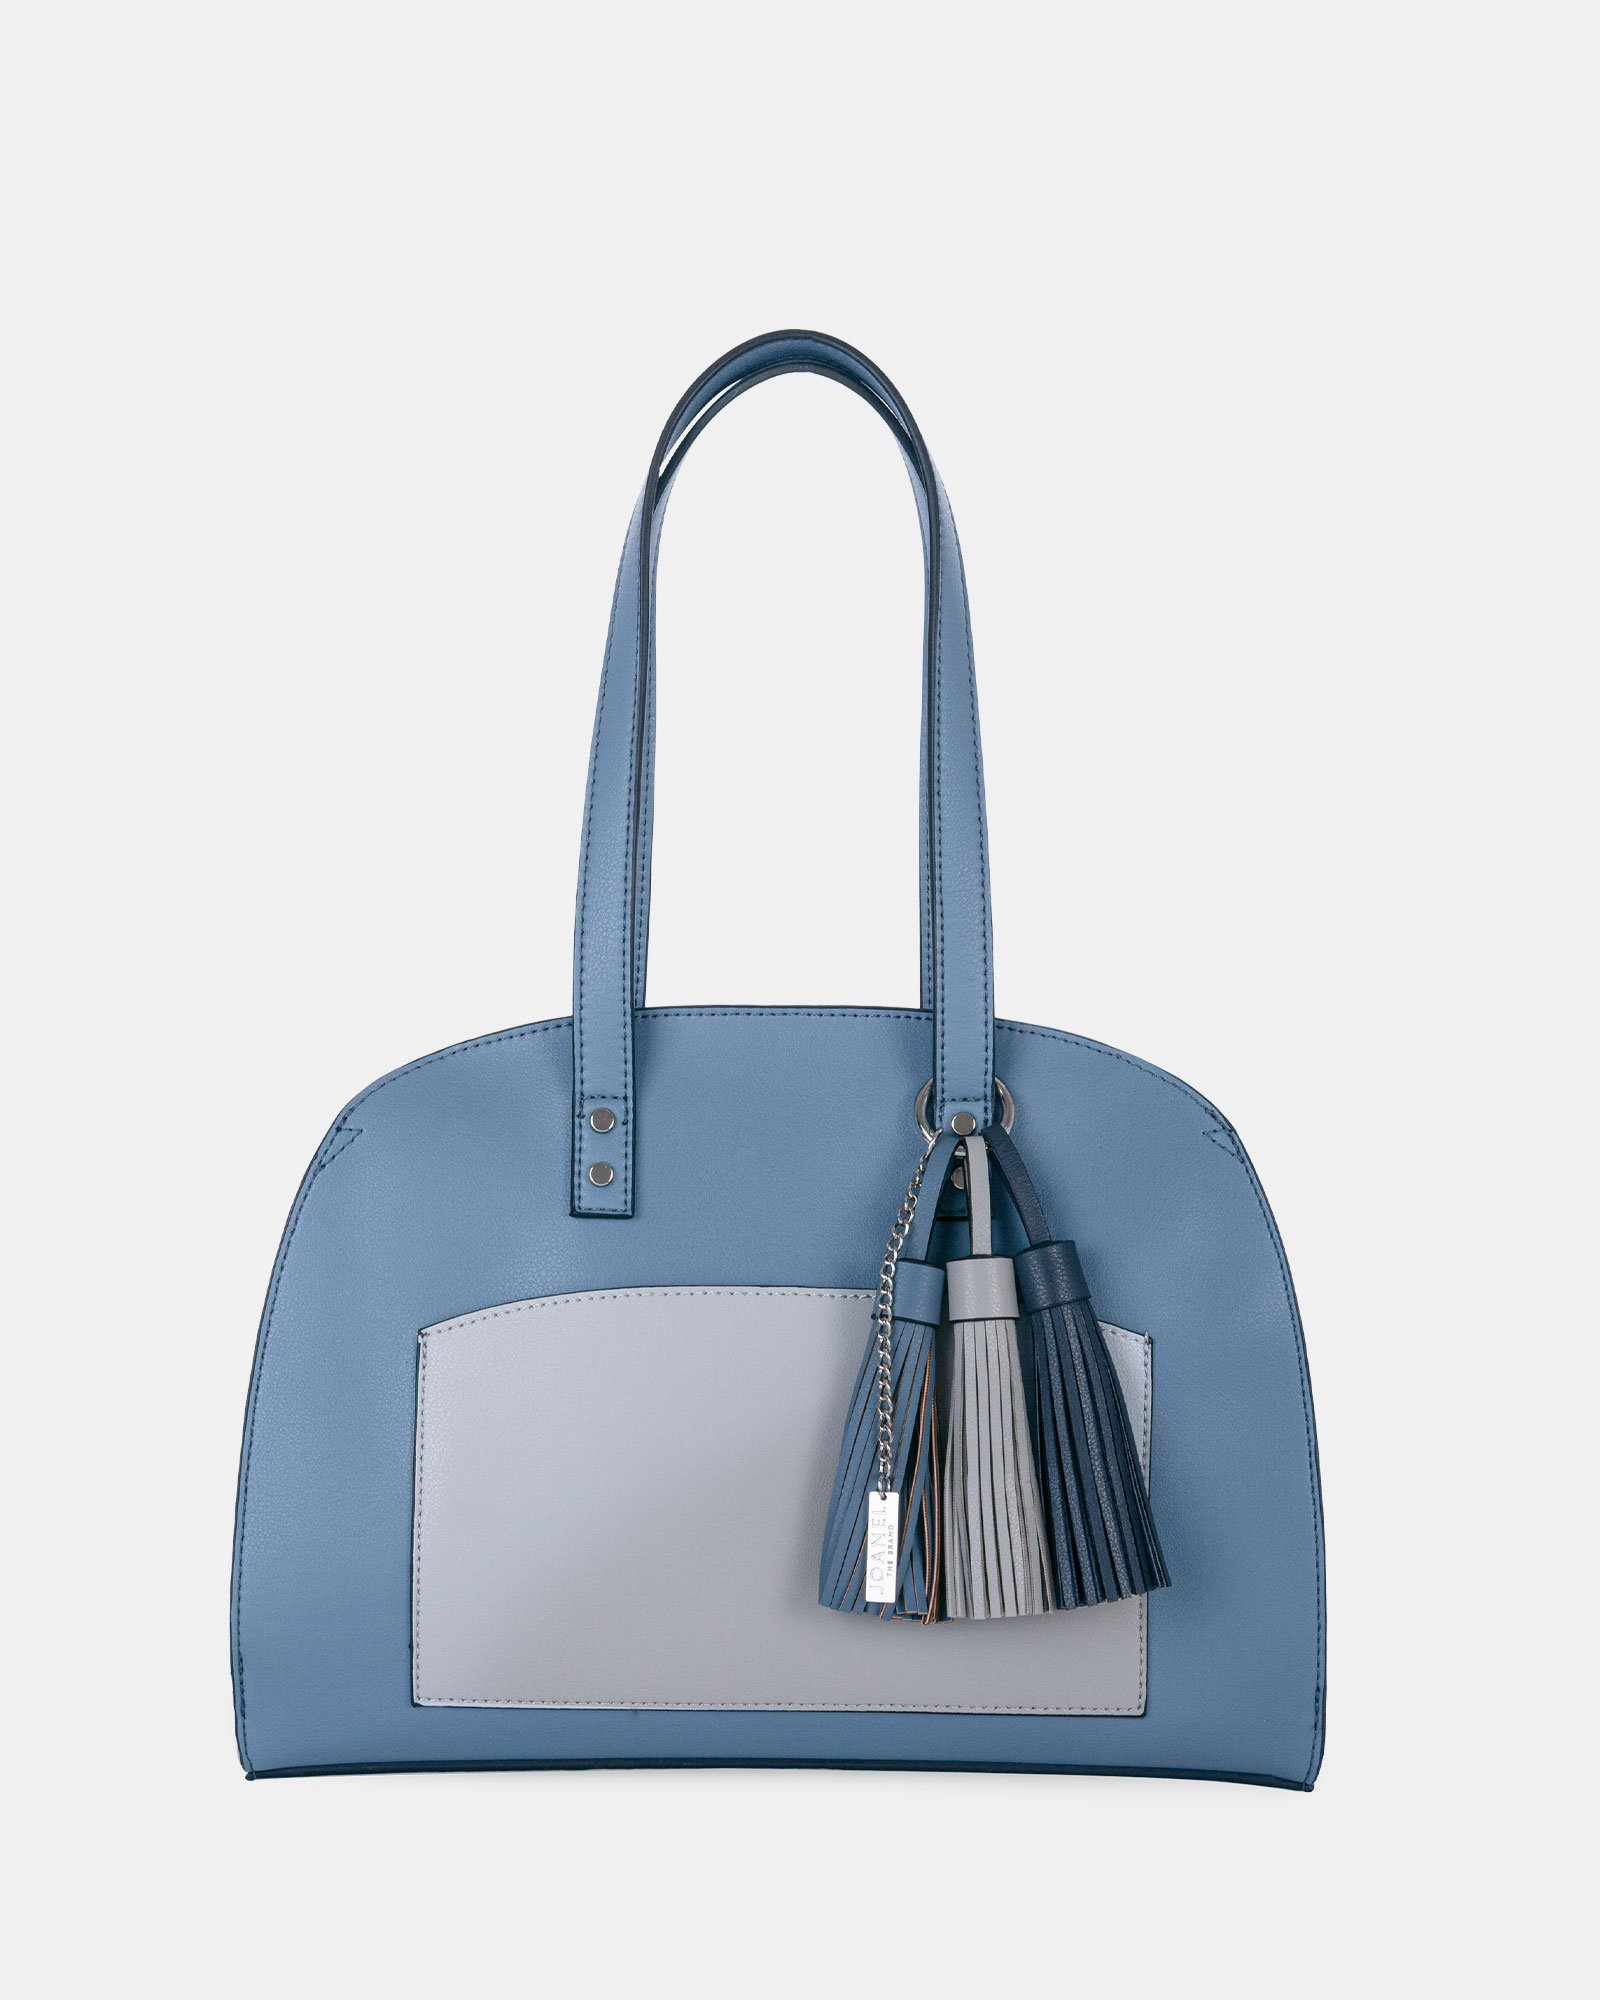 XOXO - Tote bag with Main zippered compartment - Blue combo - Joanel - Zoom